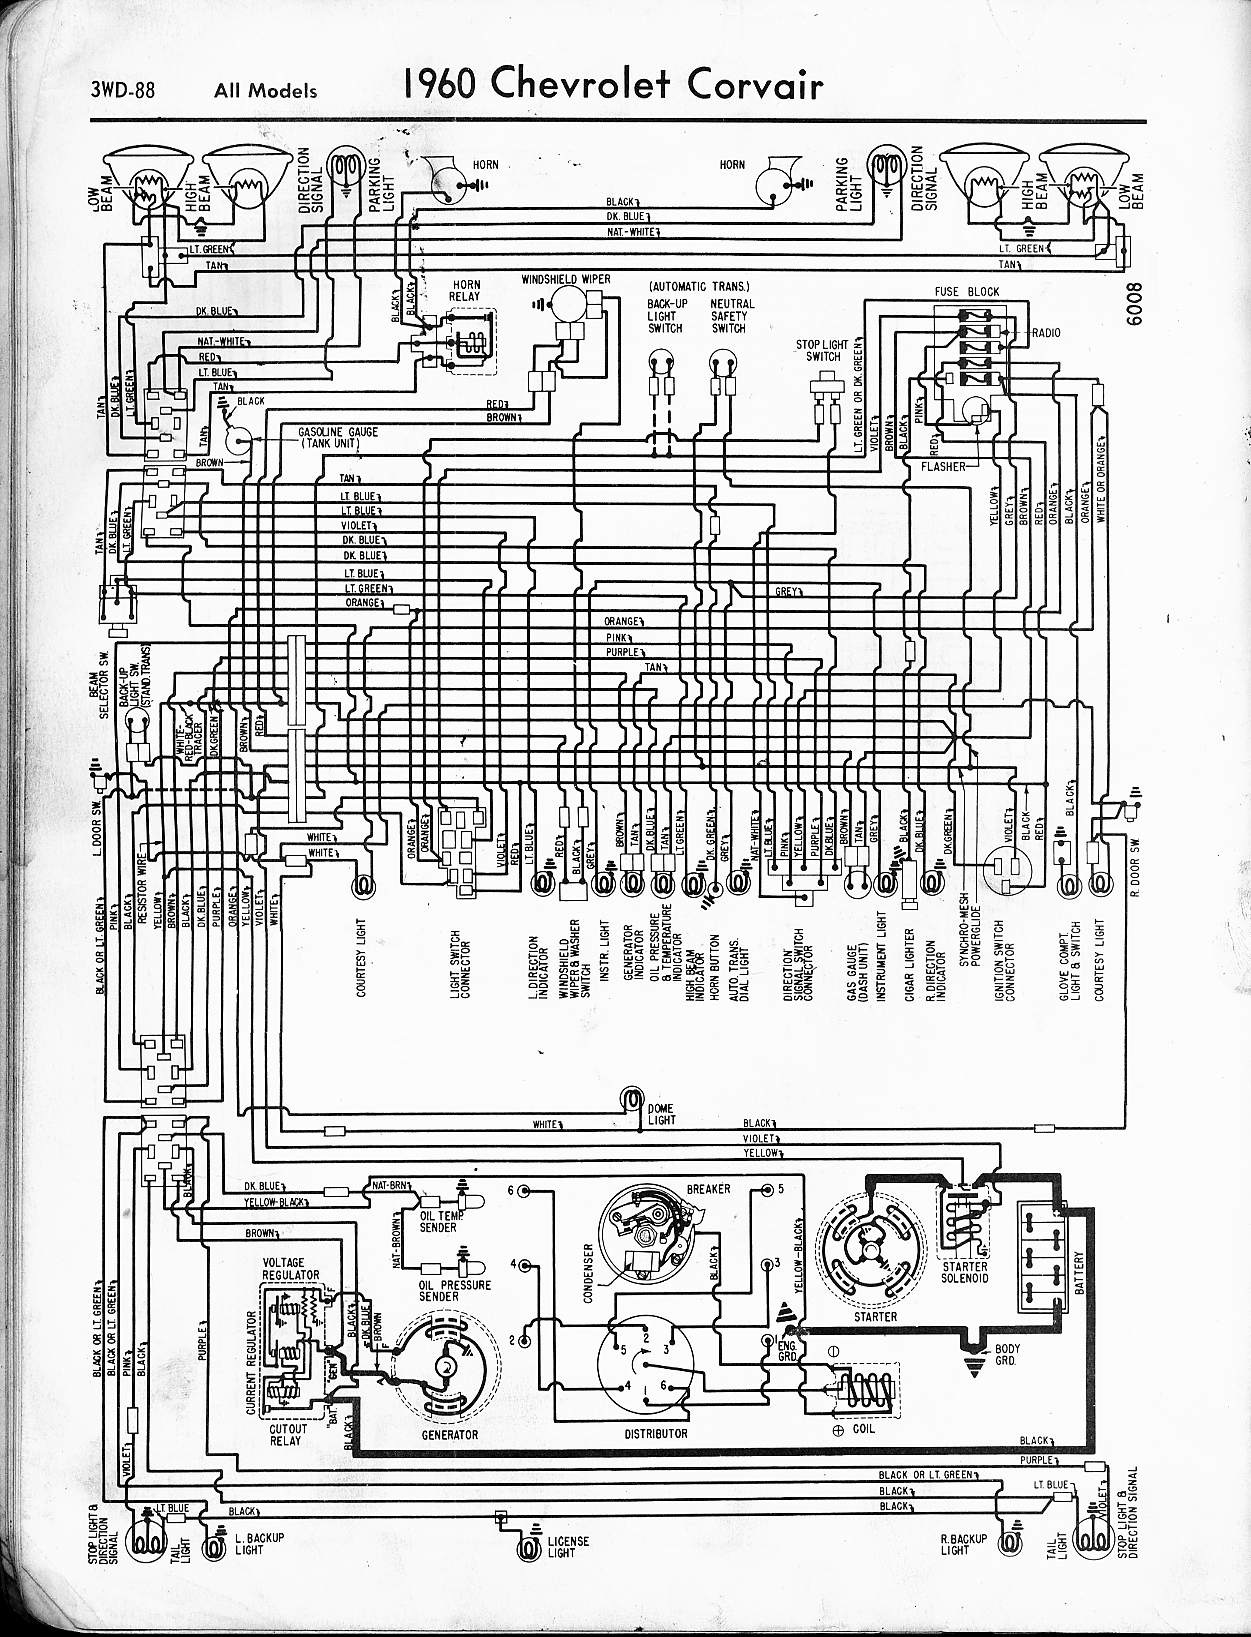 hight resolution of 1960 corvette wiring diagram wiring diagrams img 1963 corvair wiring diagram 1960 corvette wiring diagram